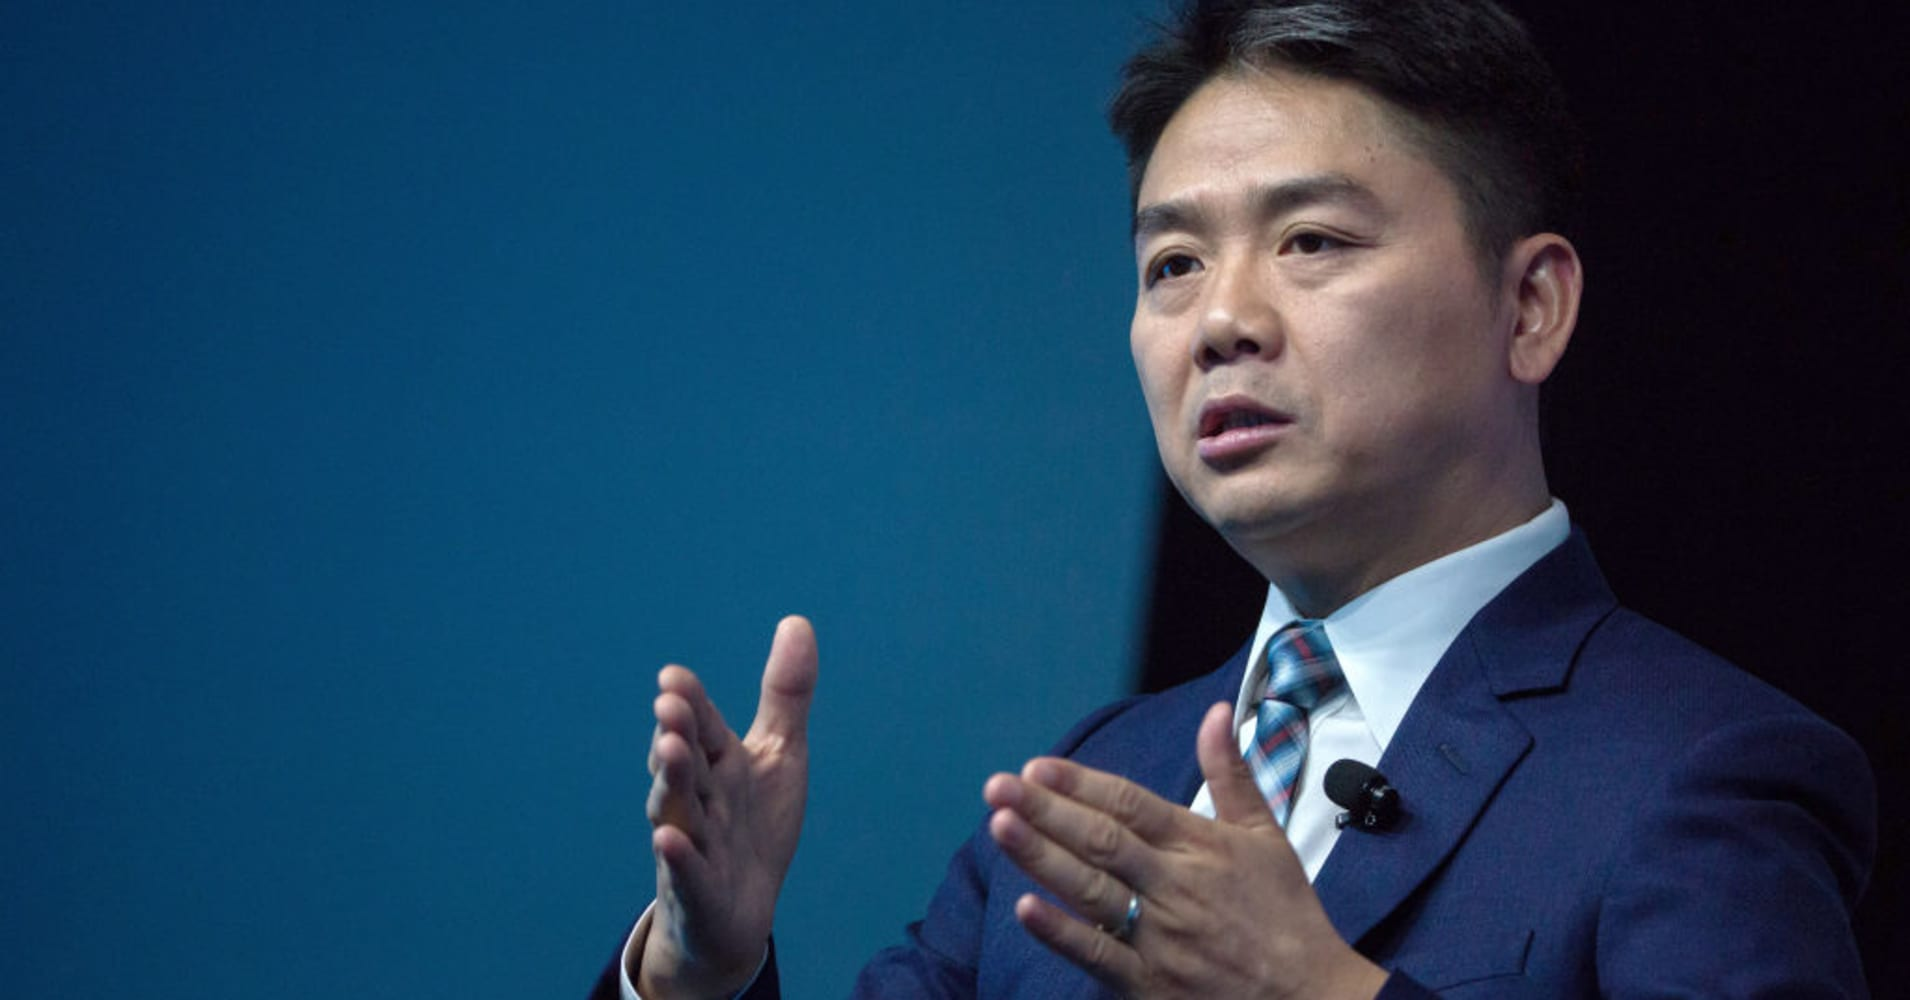 JD.com CEO Richard Liu on possible effects of a US-China trade war